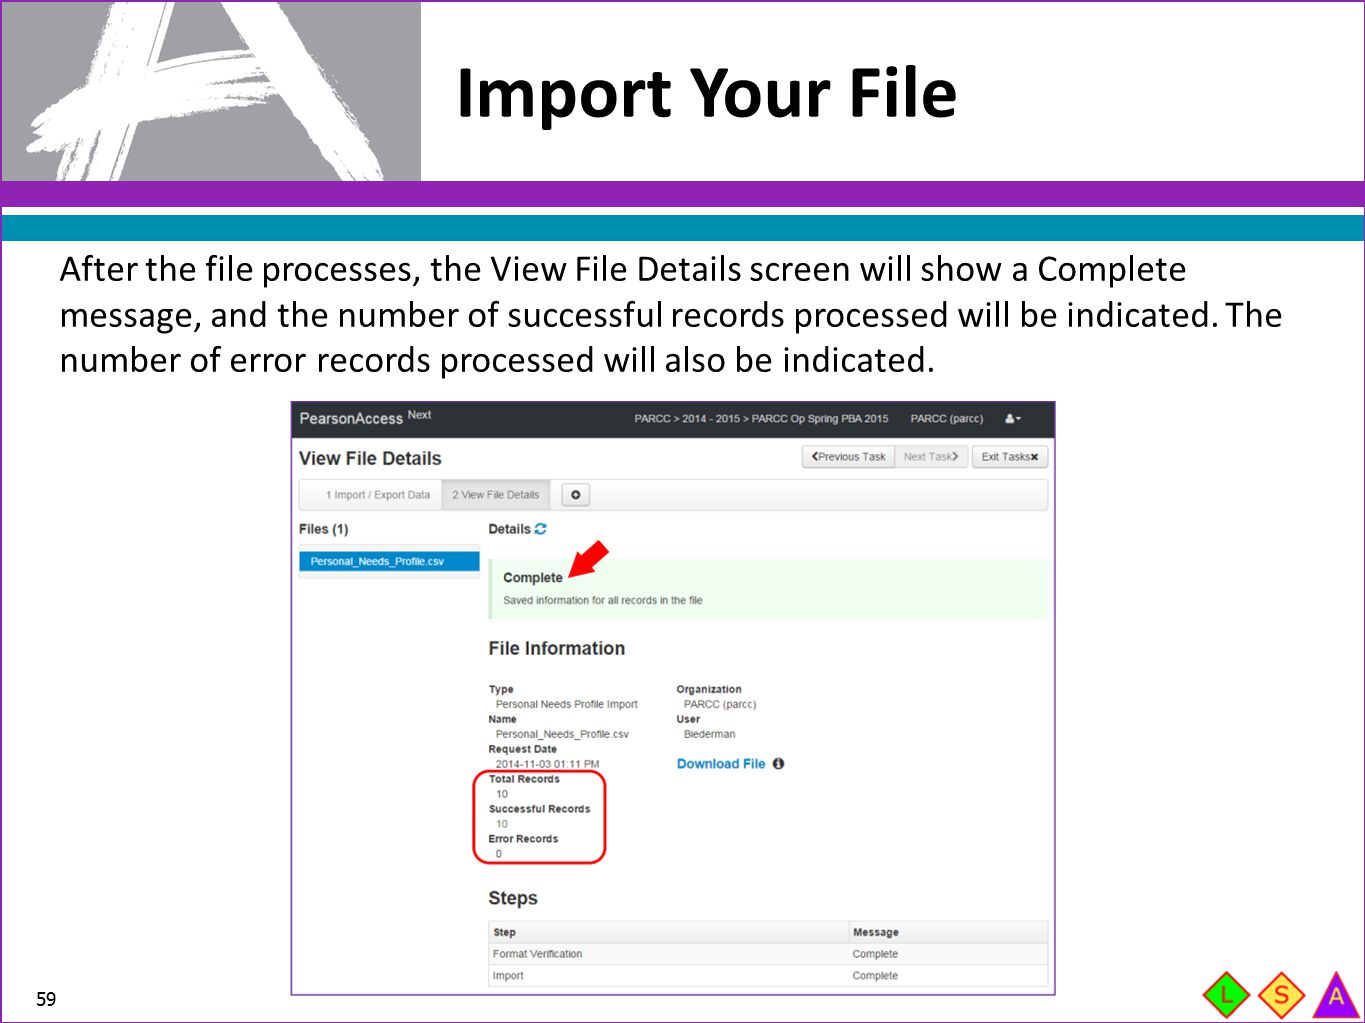 After the file processes, the View File Details screen will show a Complete message, and the number of successful records processed will be indicated.